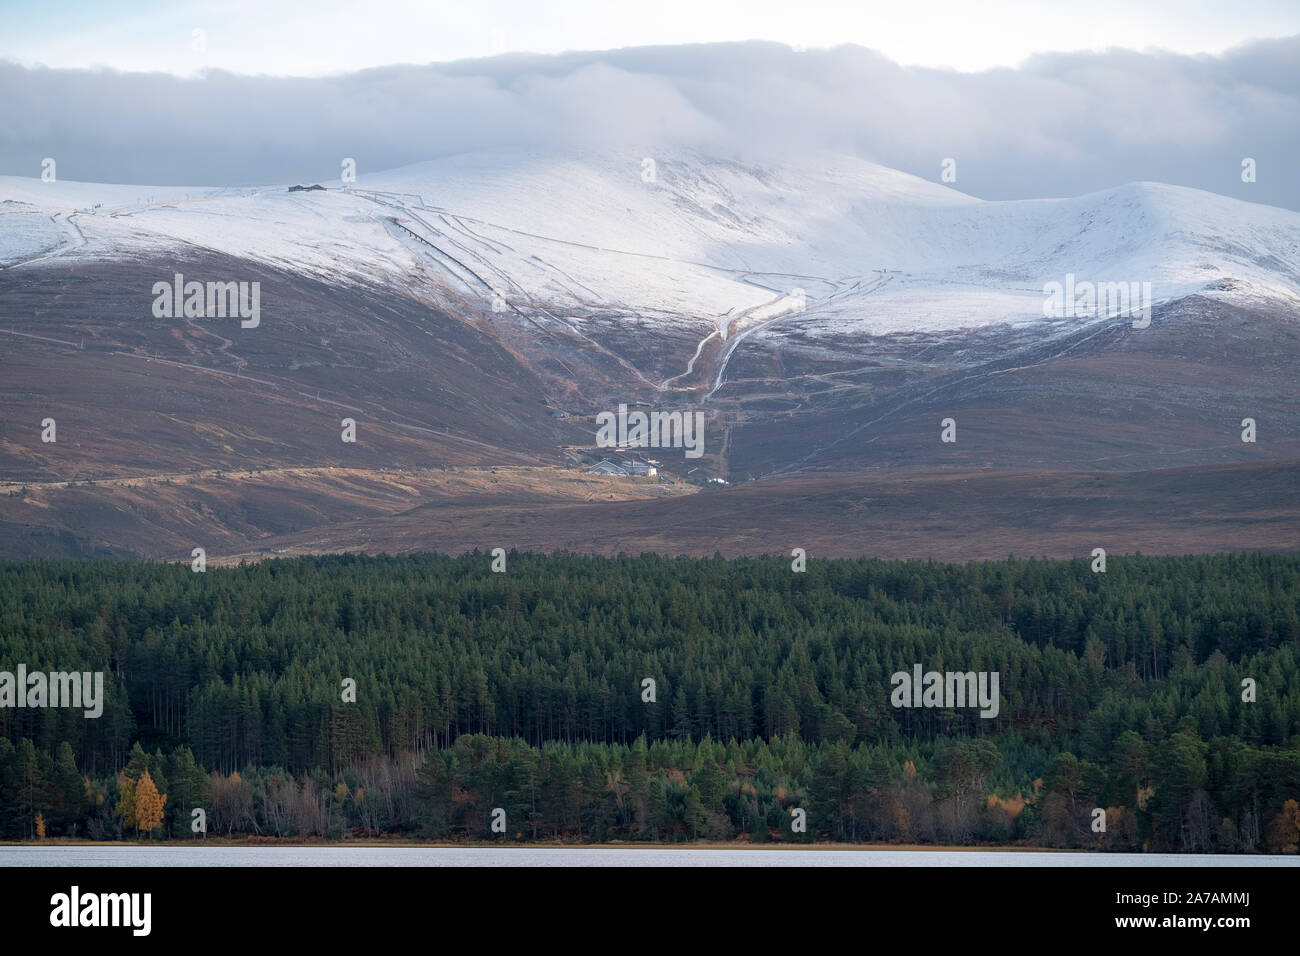 A view from Loch Morlich of the Cairngorm Mountain Ski Centre near Aviemore, Badenoch and Strathspey, Scotland Stock Photo